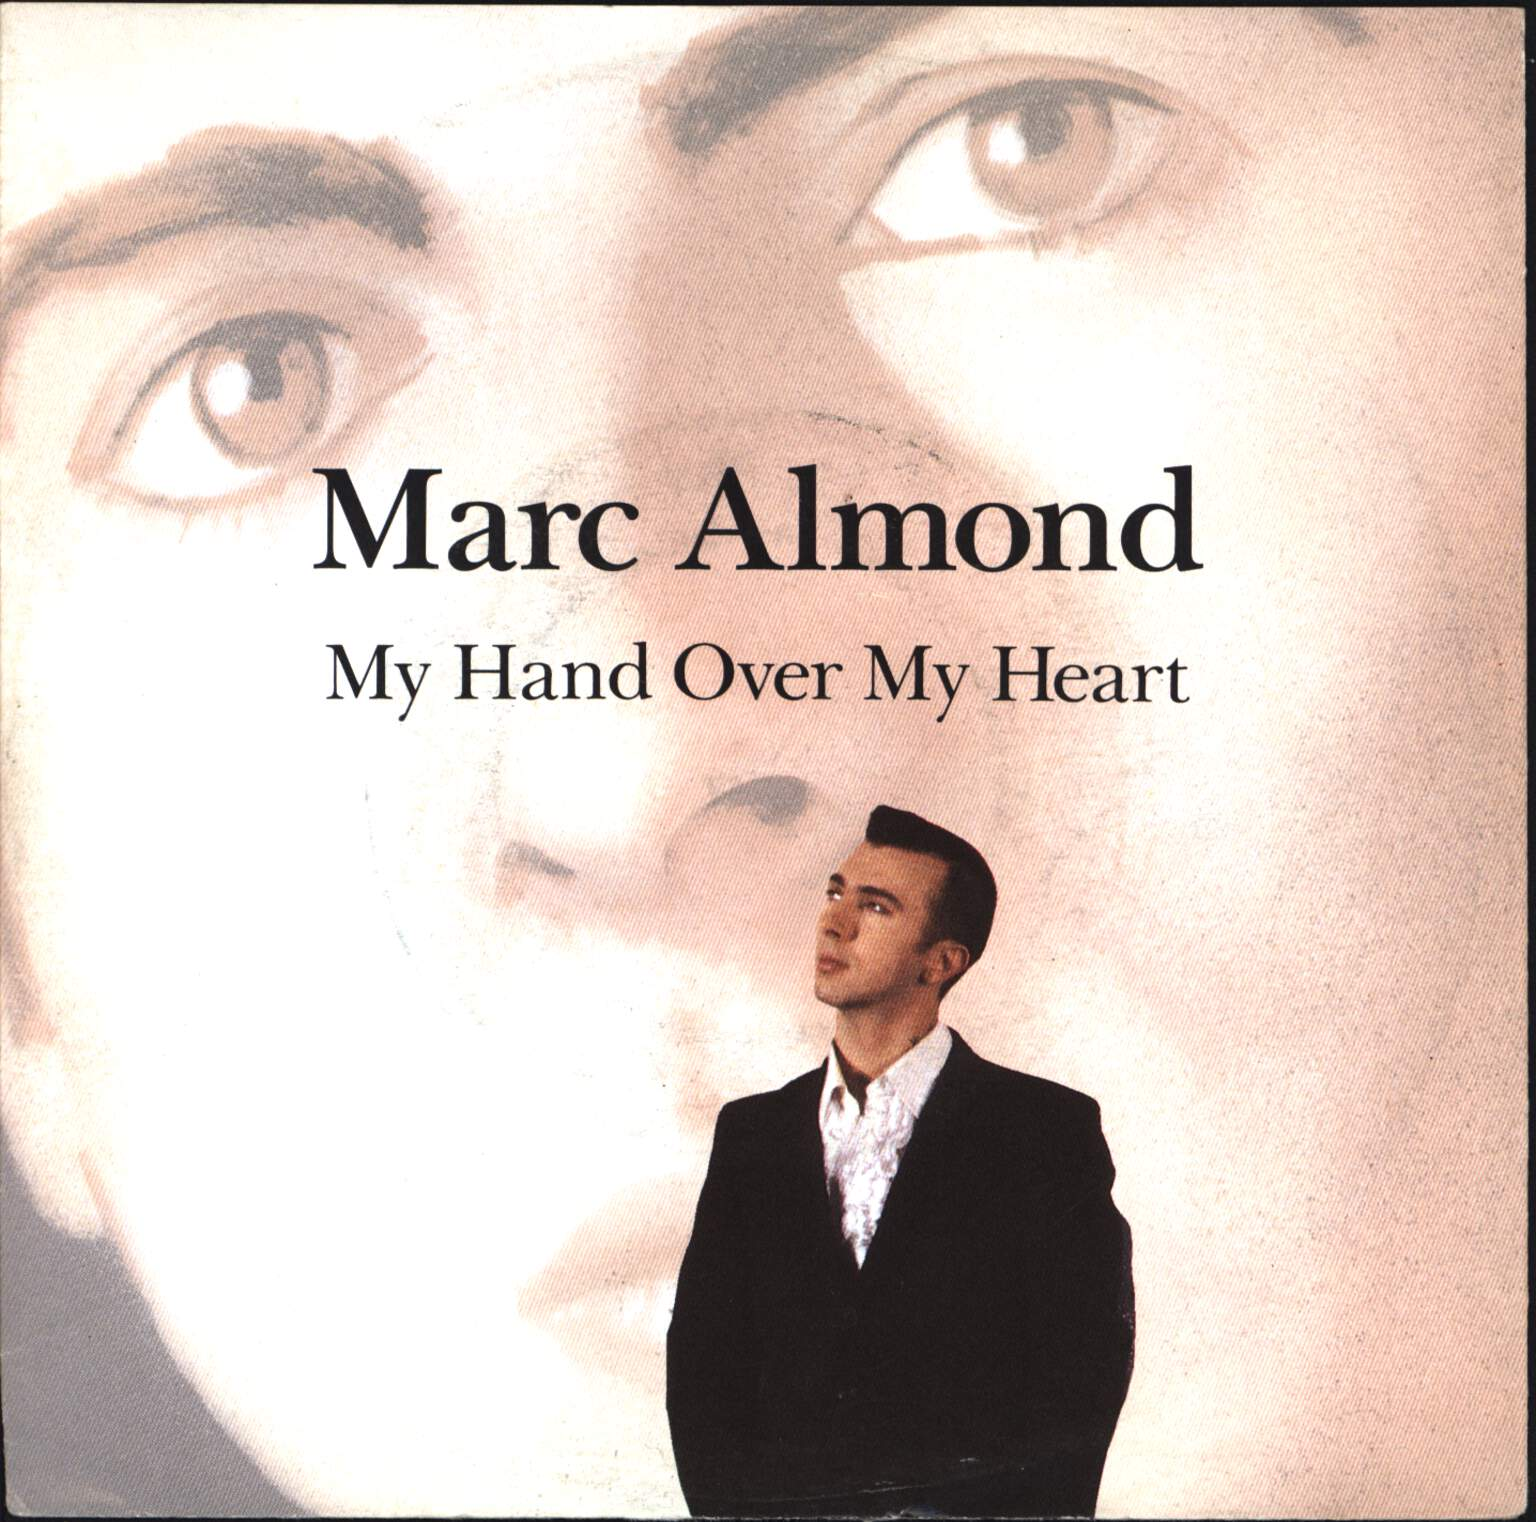 "Marc Almond: My Hand Over My Heart, 7"" Single (Vinyl)"